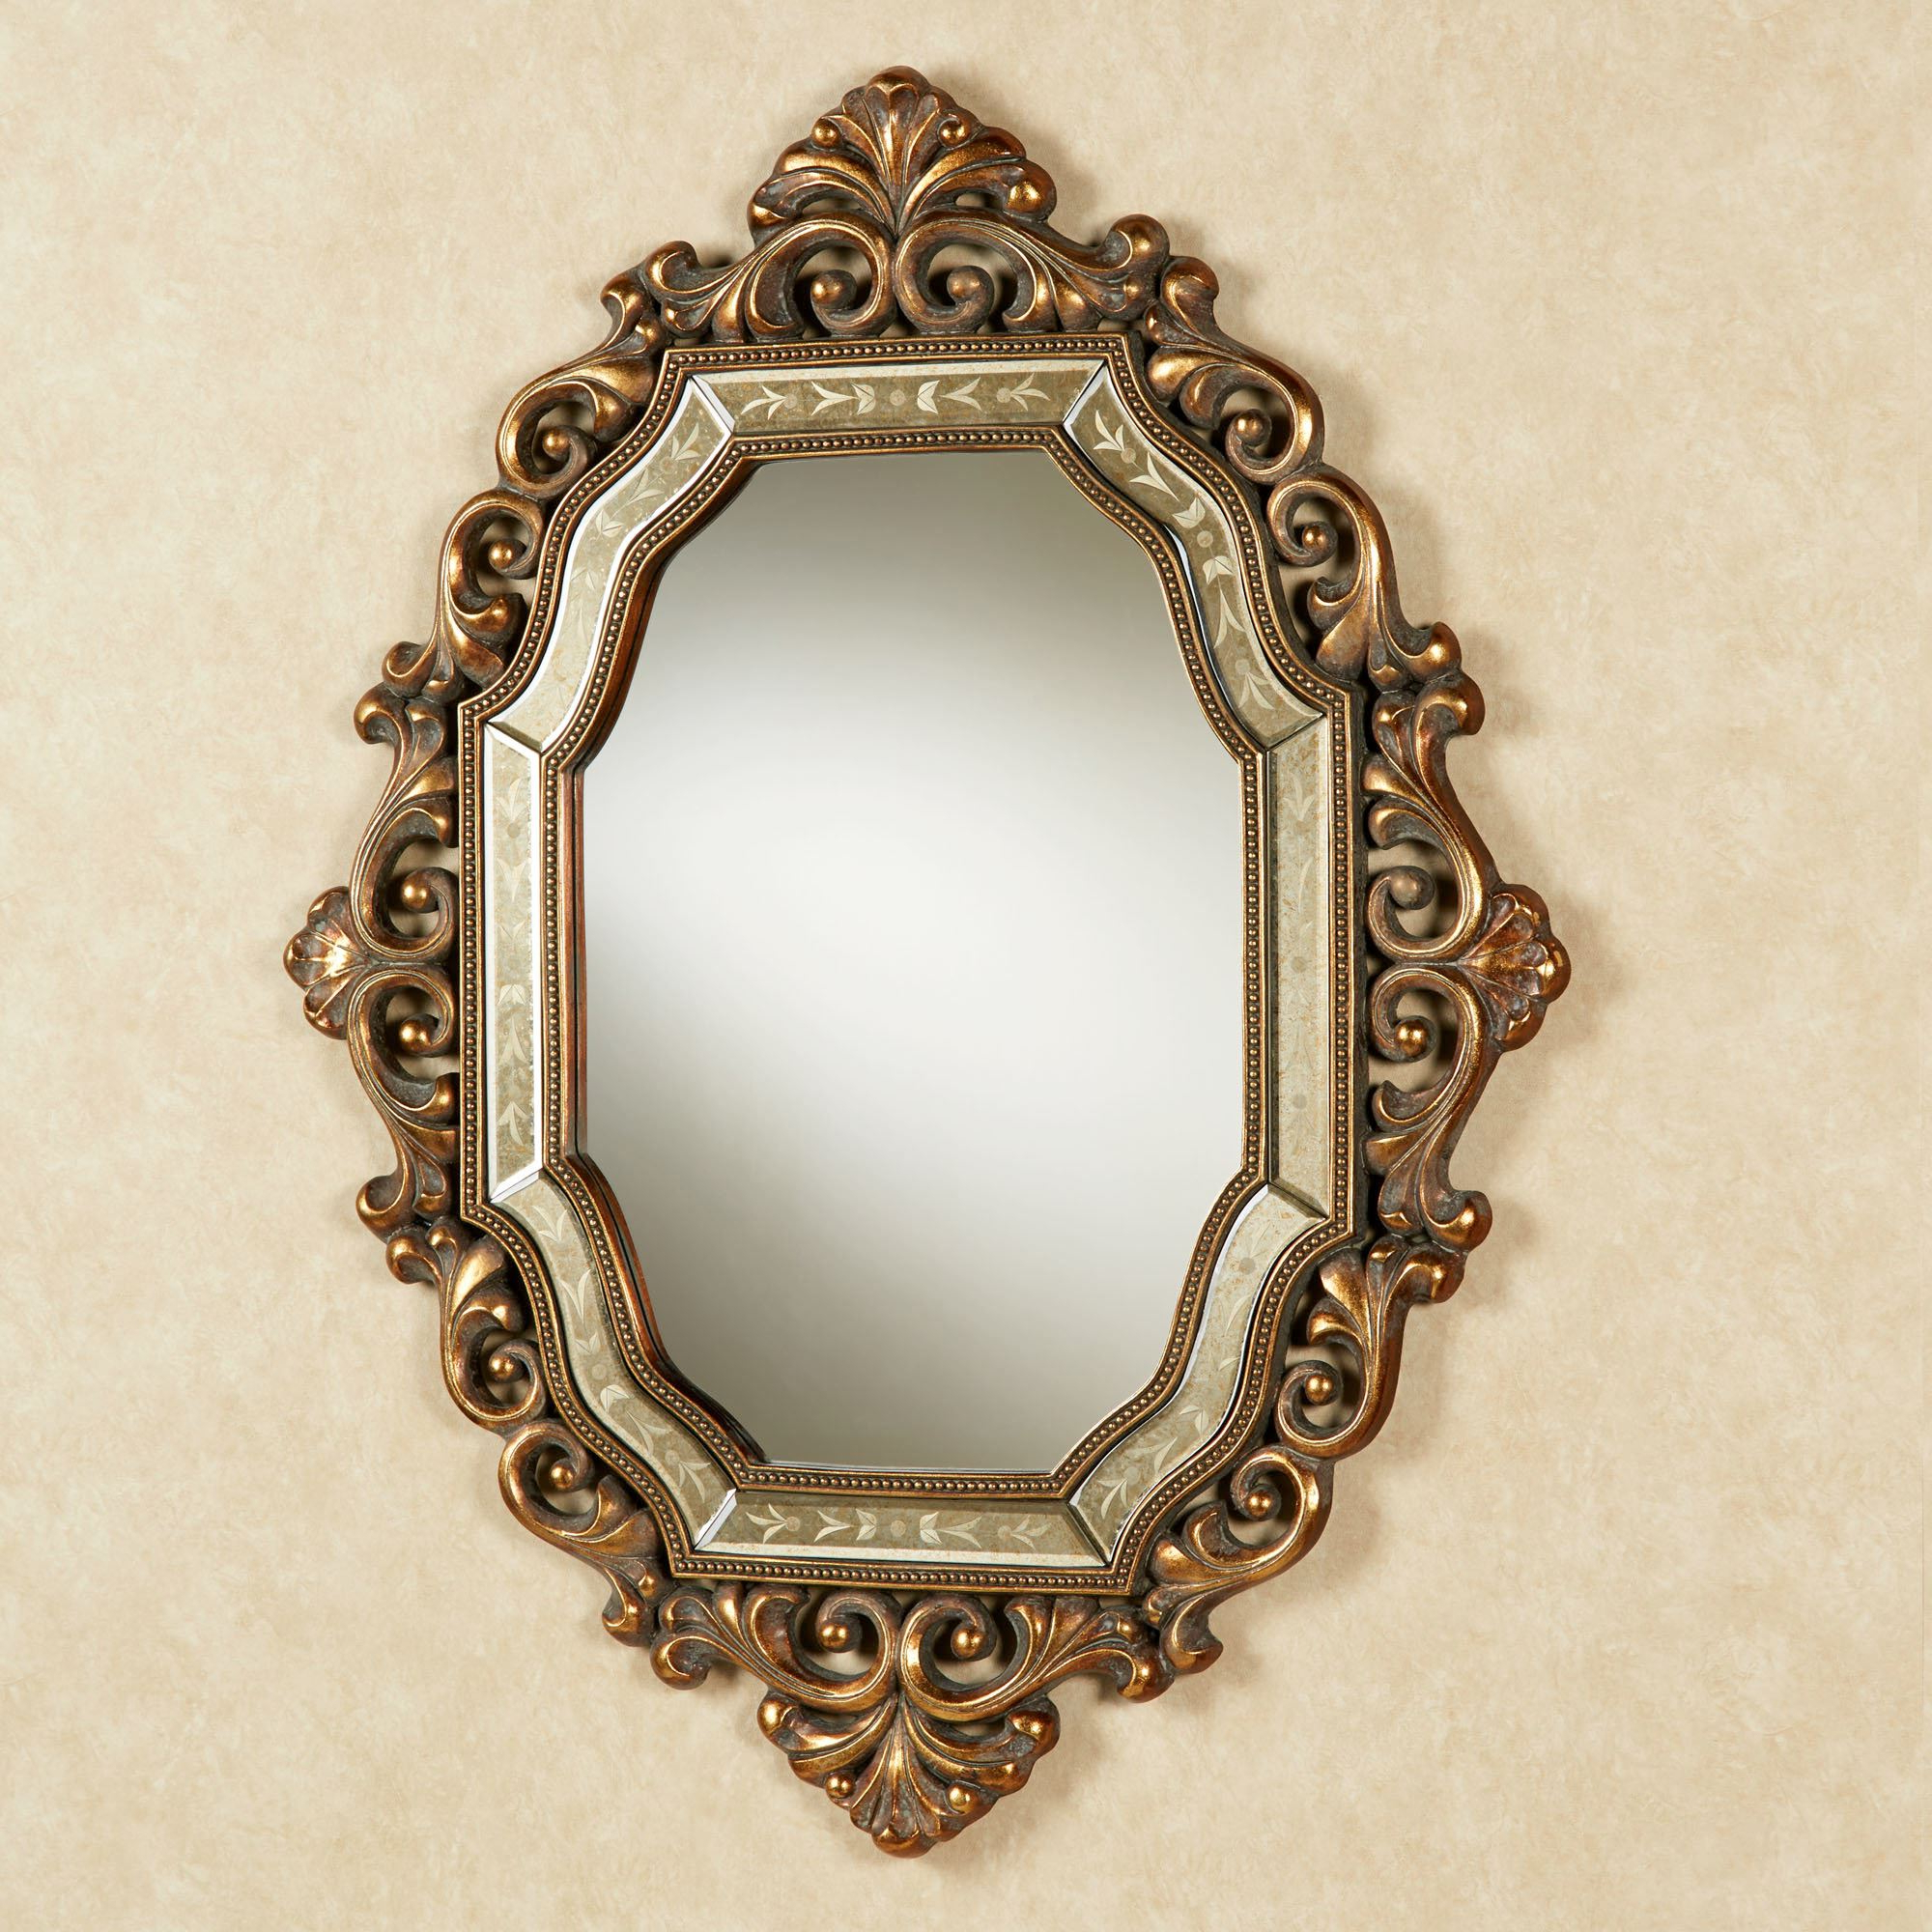 Antique Oval Wall Mirrors For 2020 Verena Old World Wall Mirror (View 4 of 20)